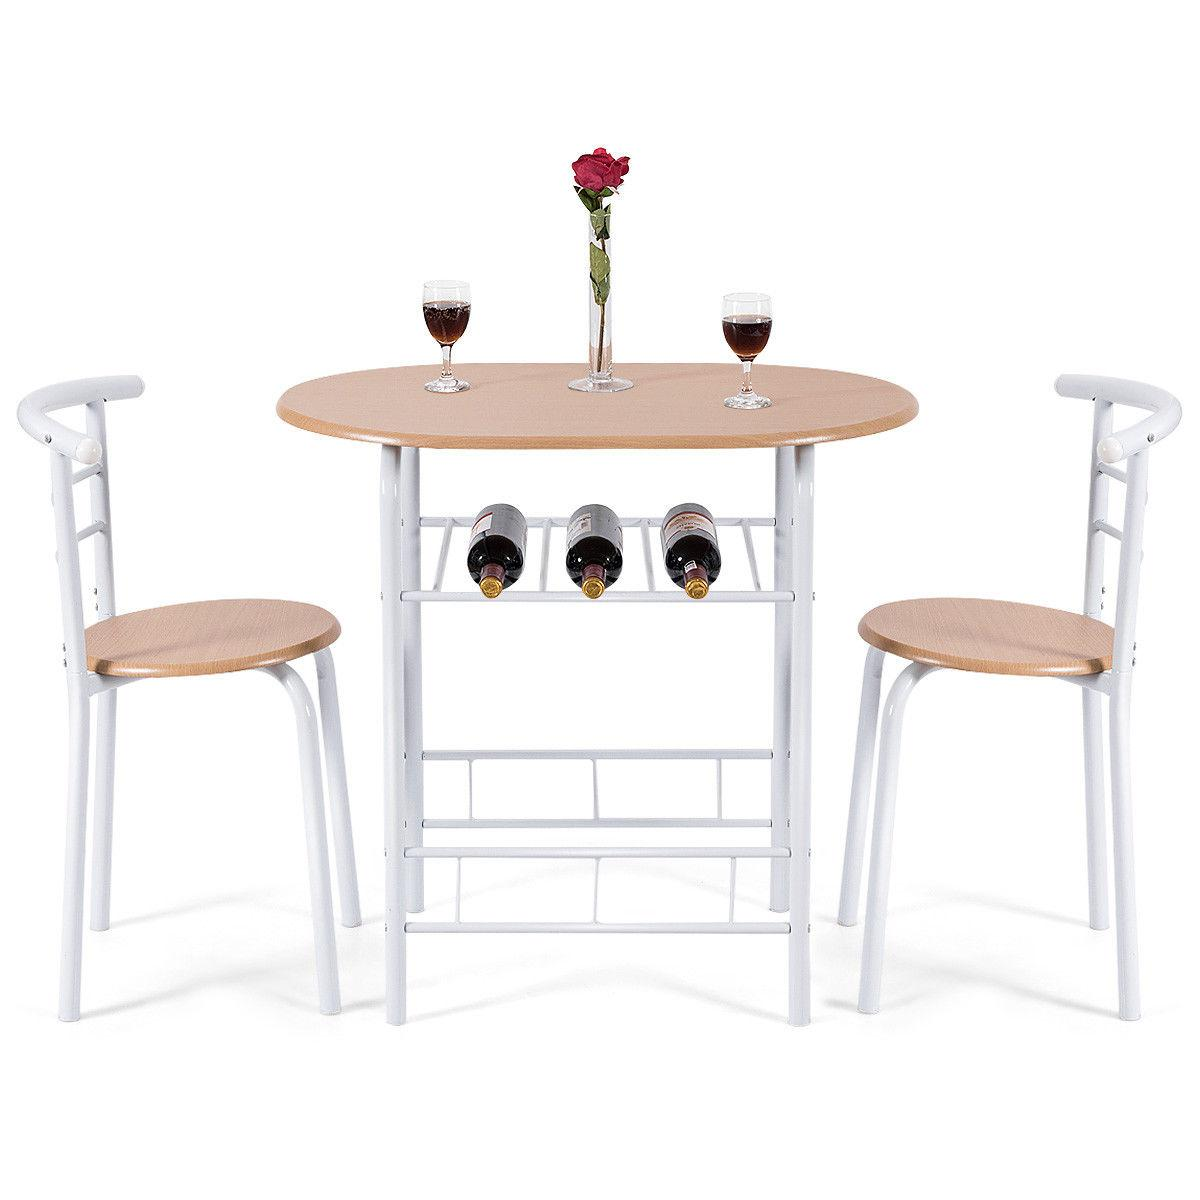 3 Dining Table Bistro Pub Home Breakfast Furniture